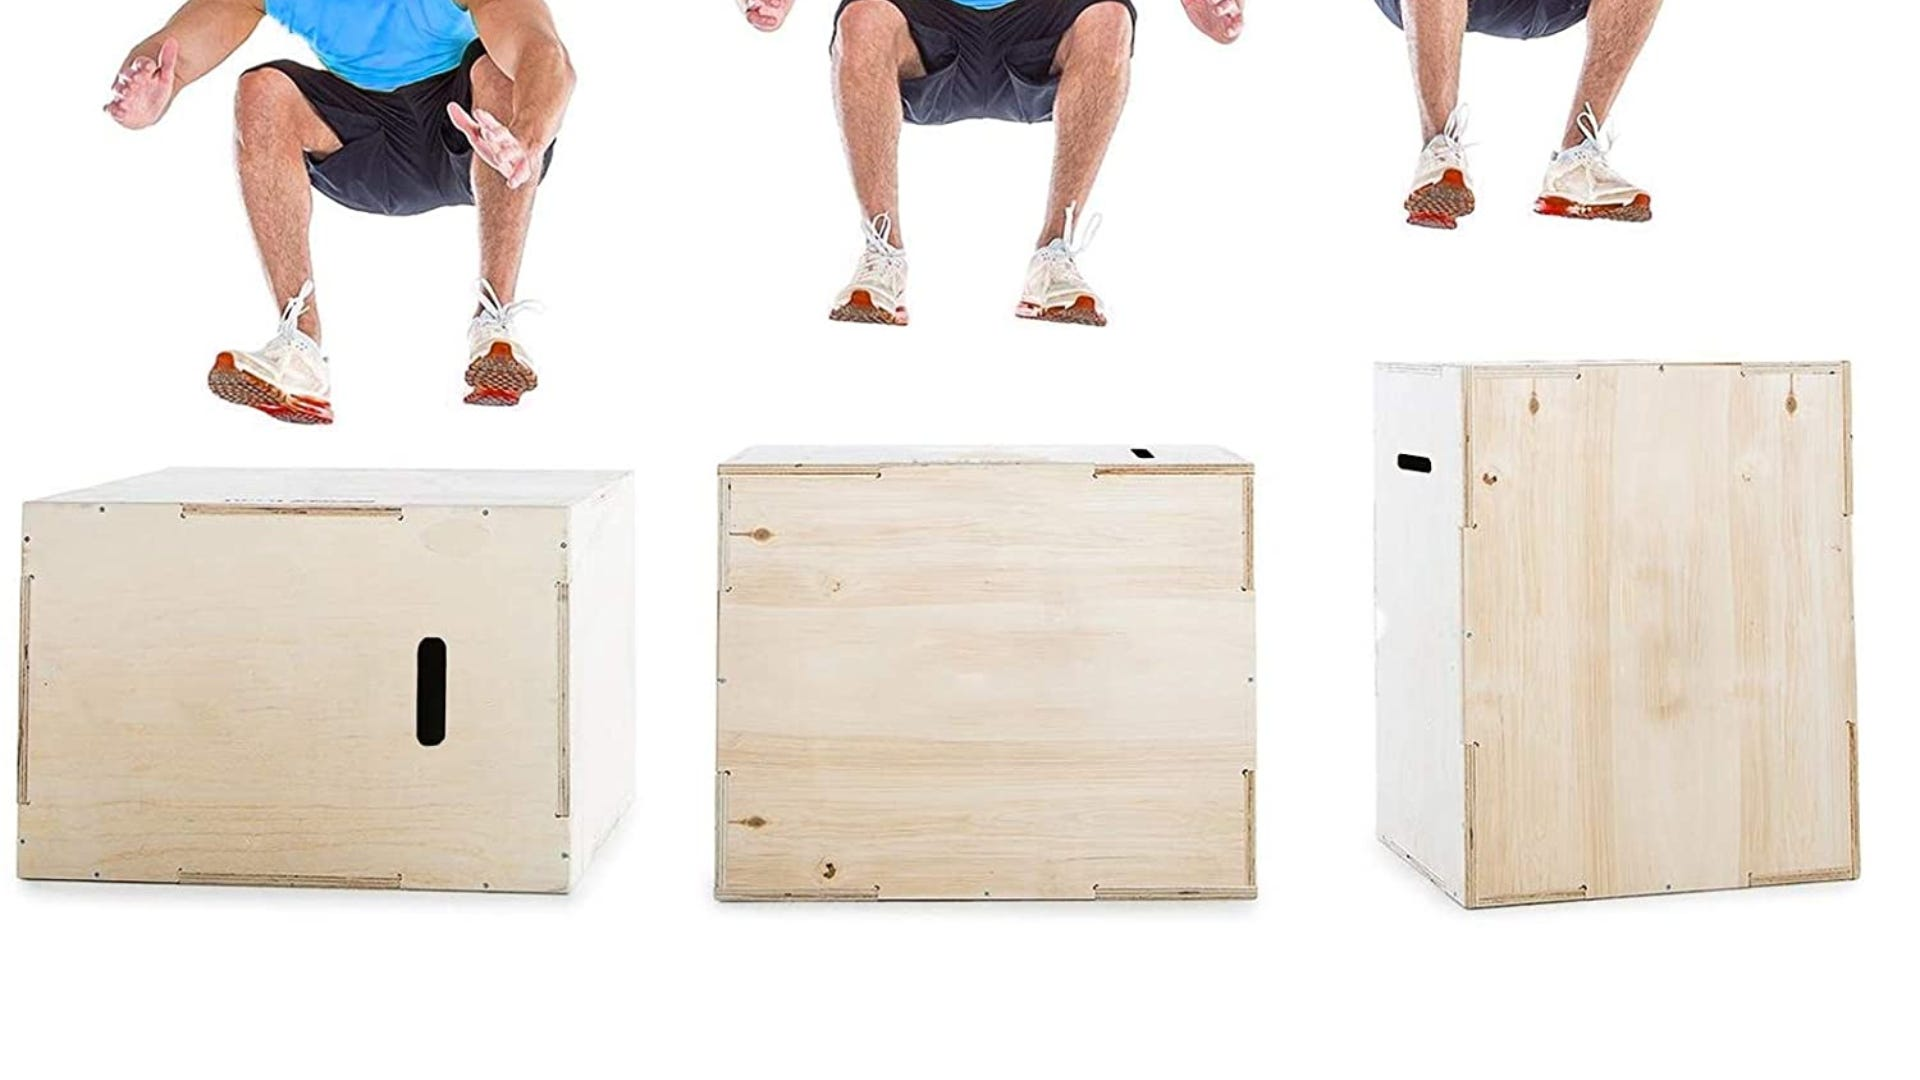 Three wooden plyometric boxes set at different heights with a man jumping onto them.